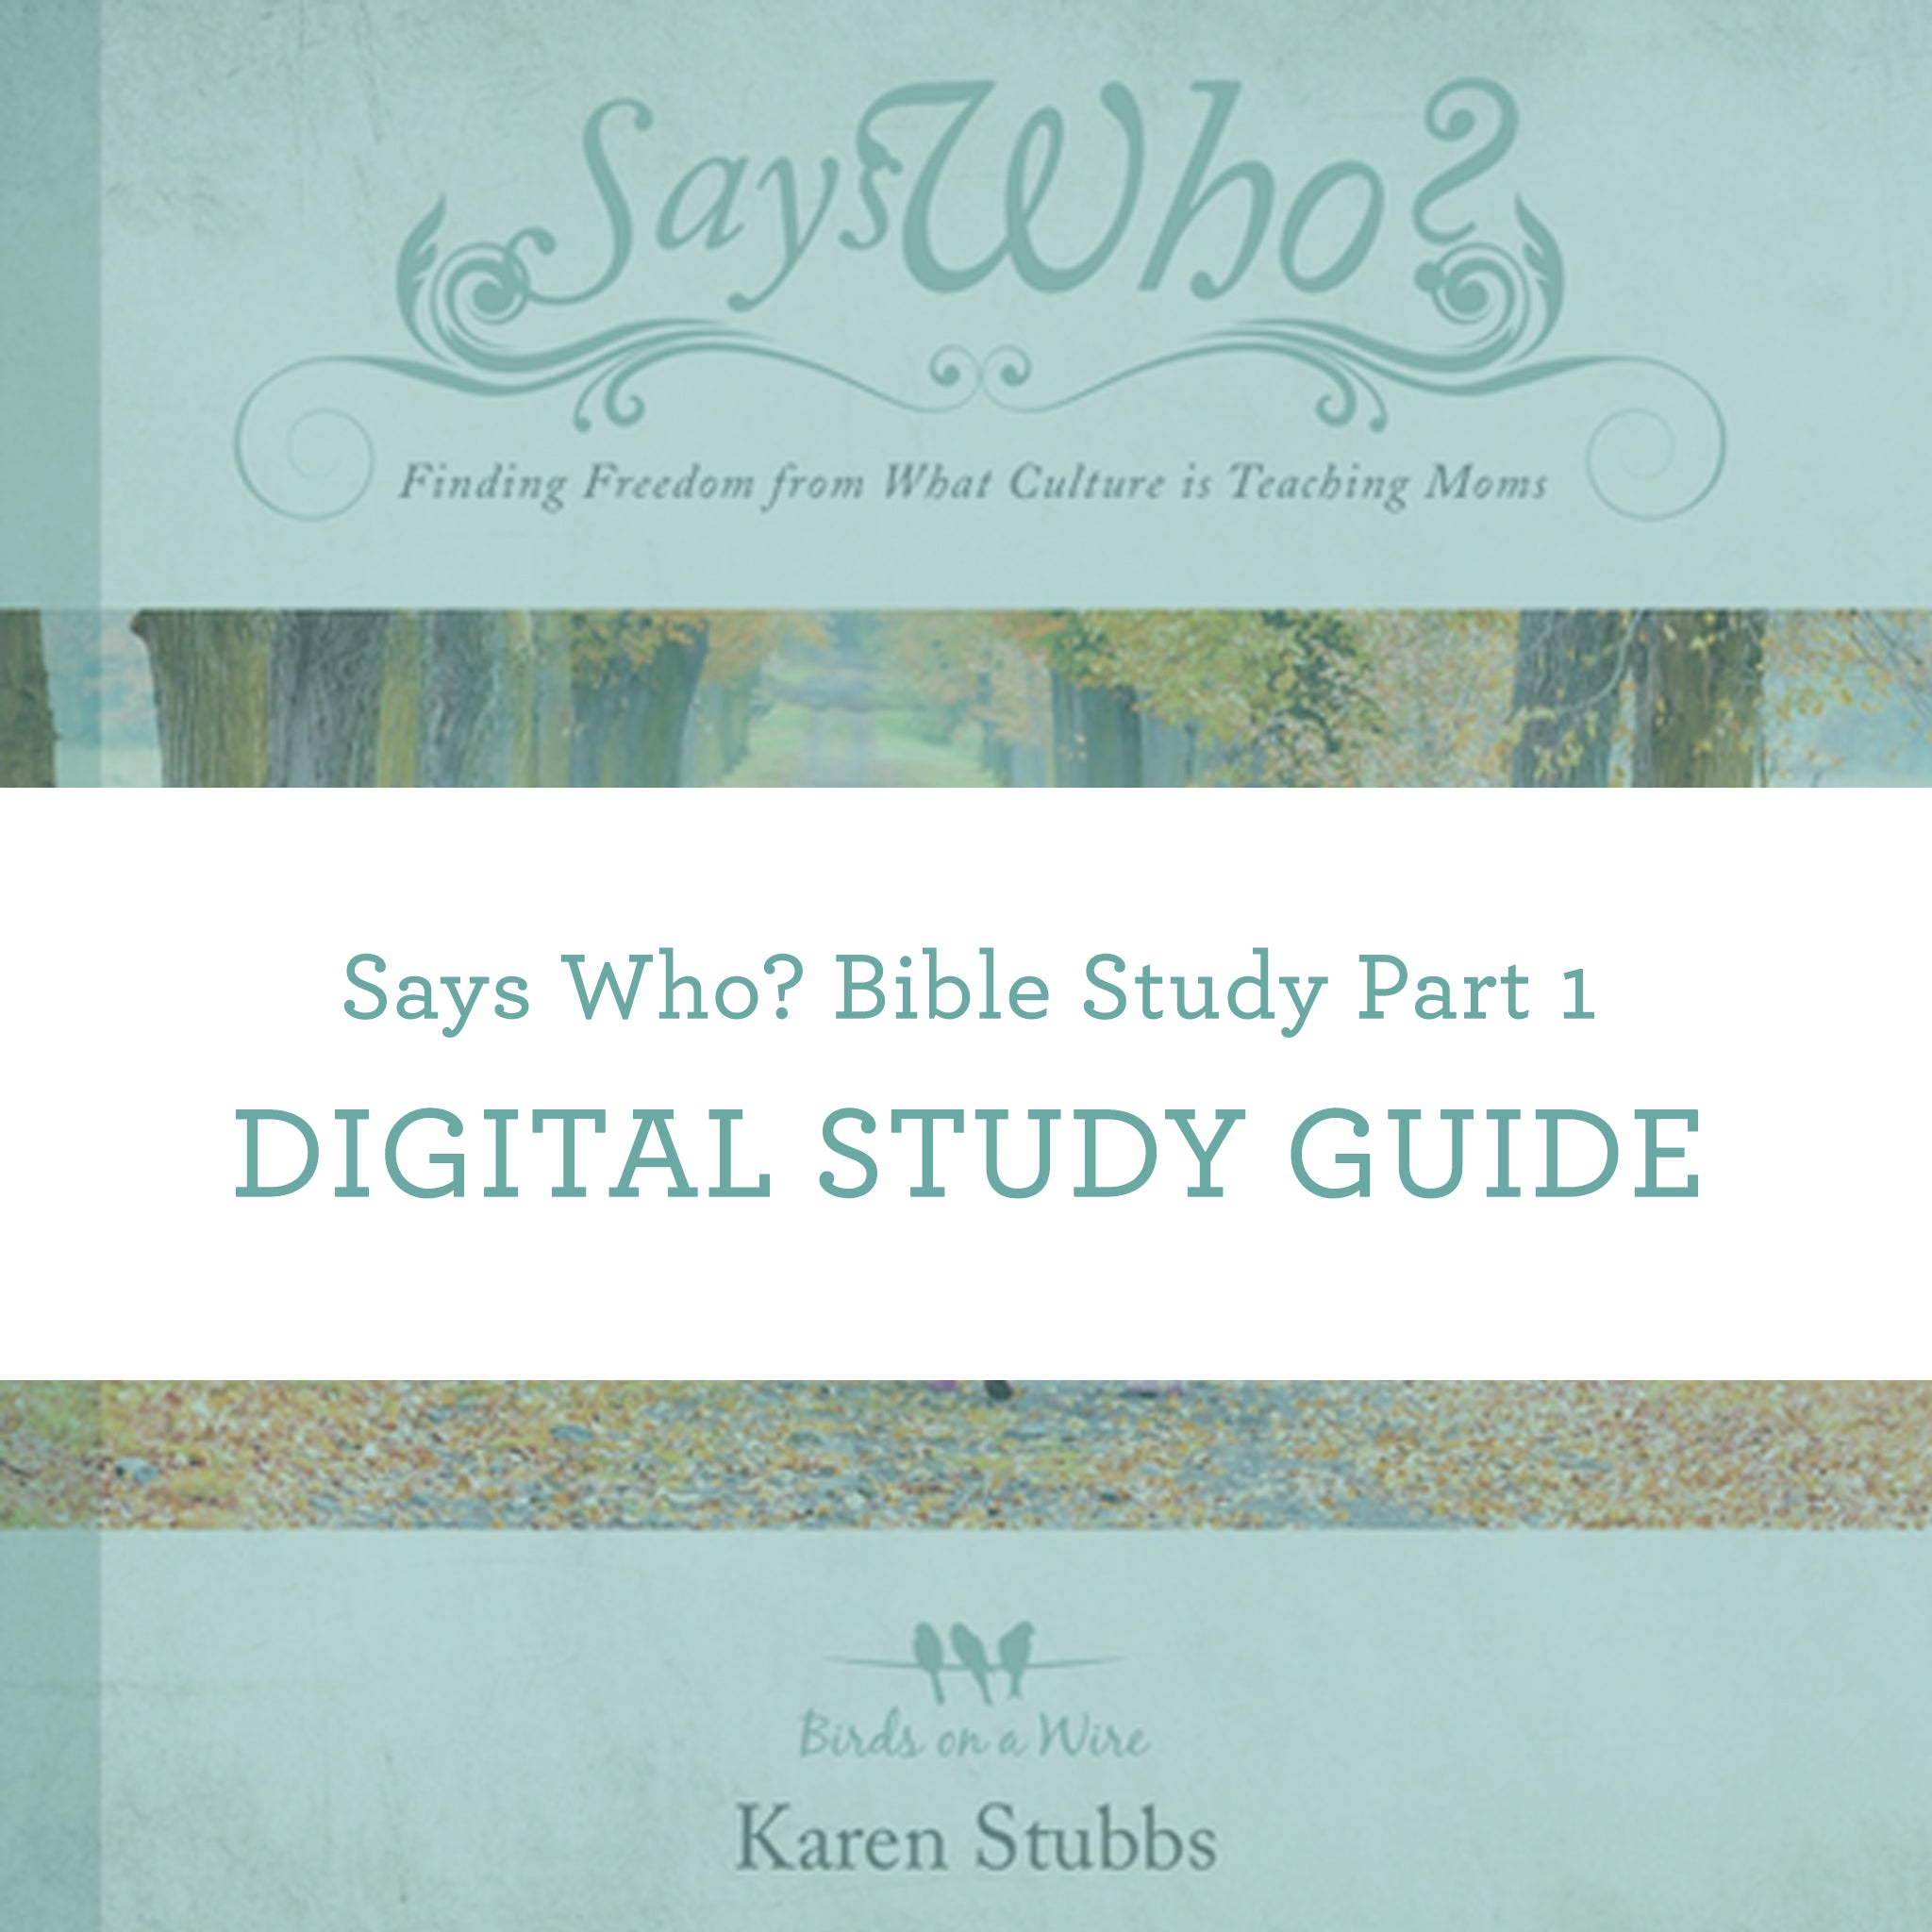 Says Who? Bible Study Part 1 | Digital Study Guide